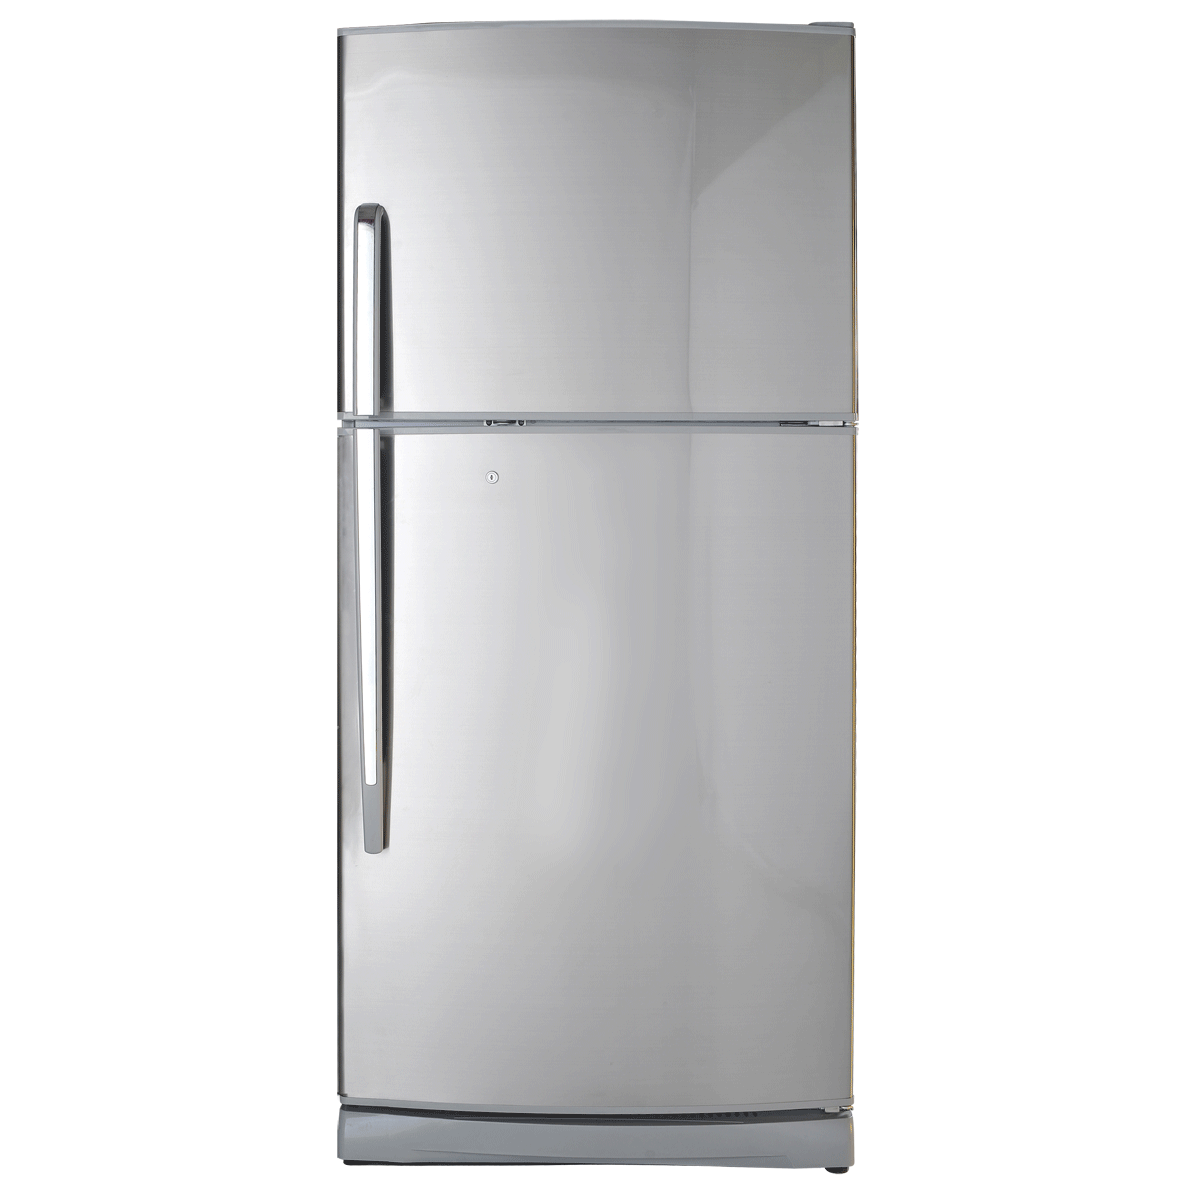 Refrigerator PNG images free download.